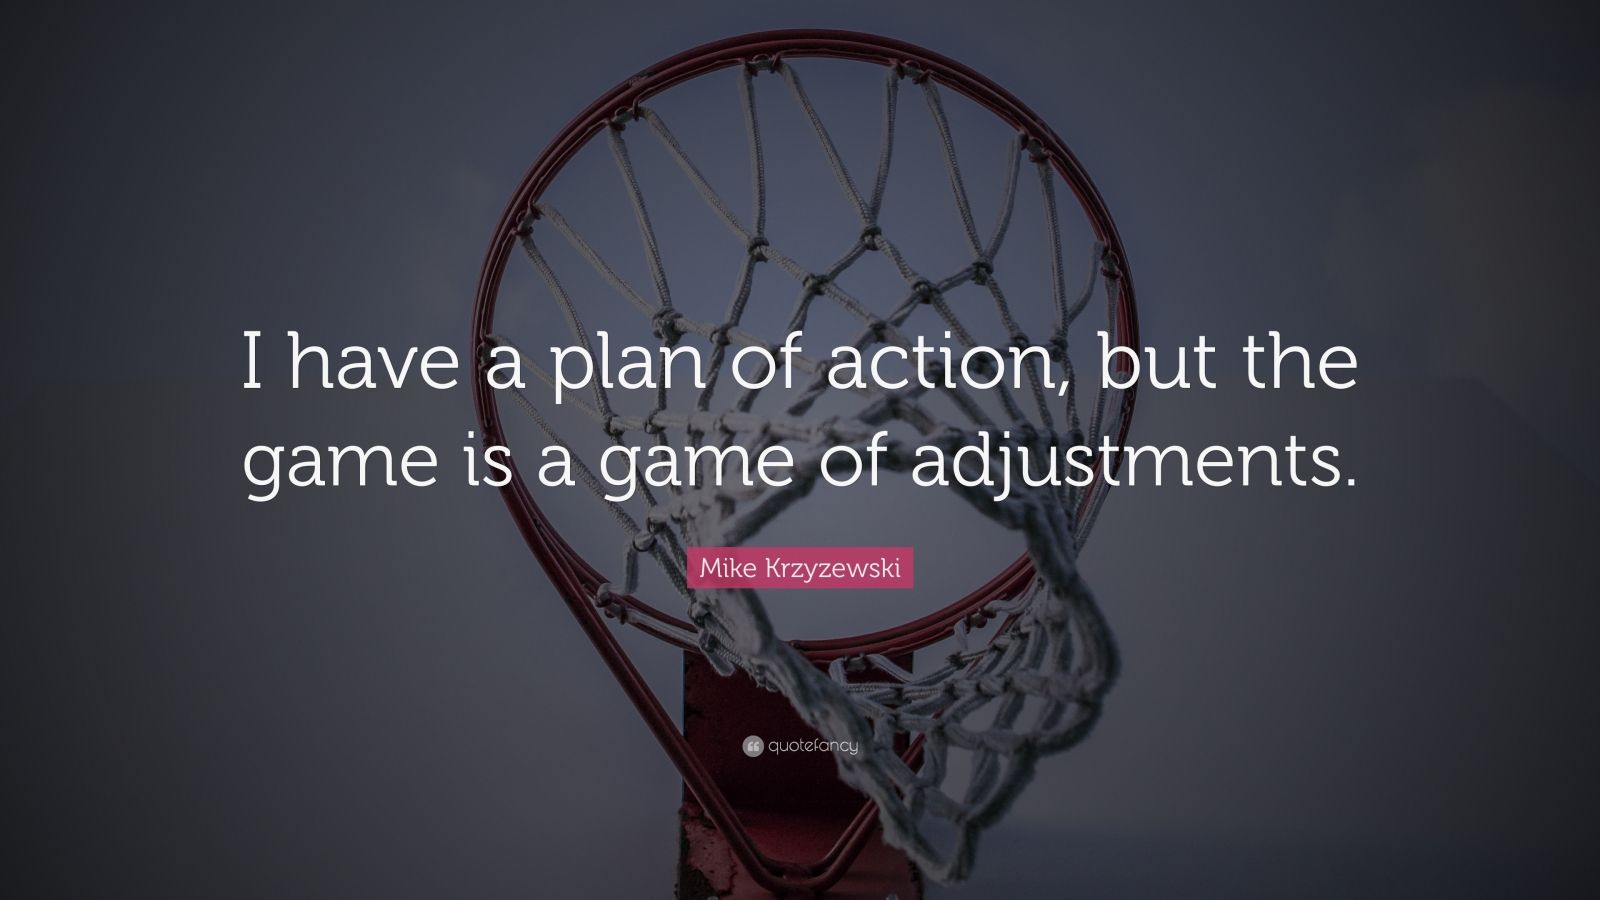 """Mike Krzyzewski Quote: """"I have a plan of action, but the game is a game of adjustments."""""""